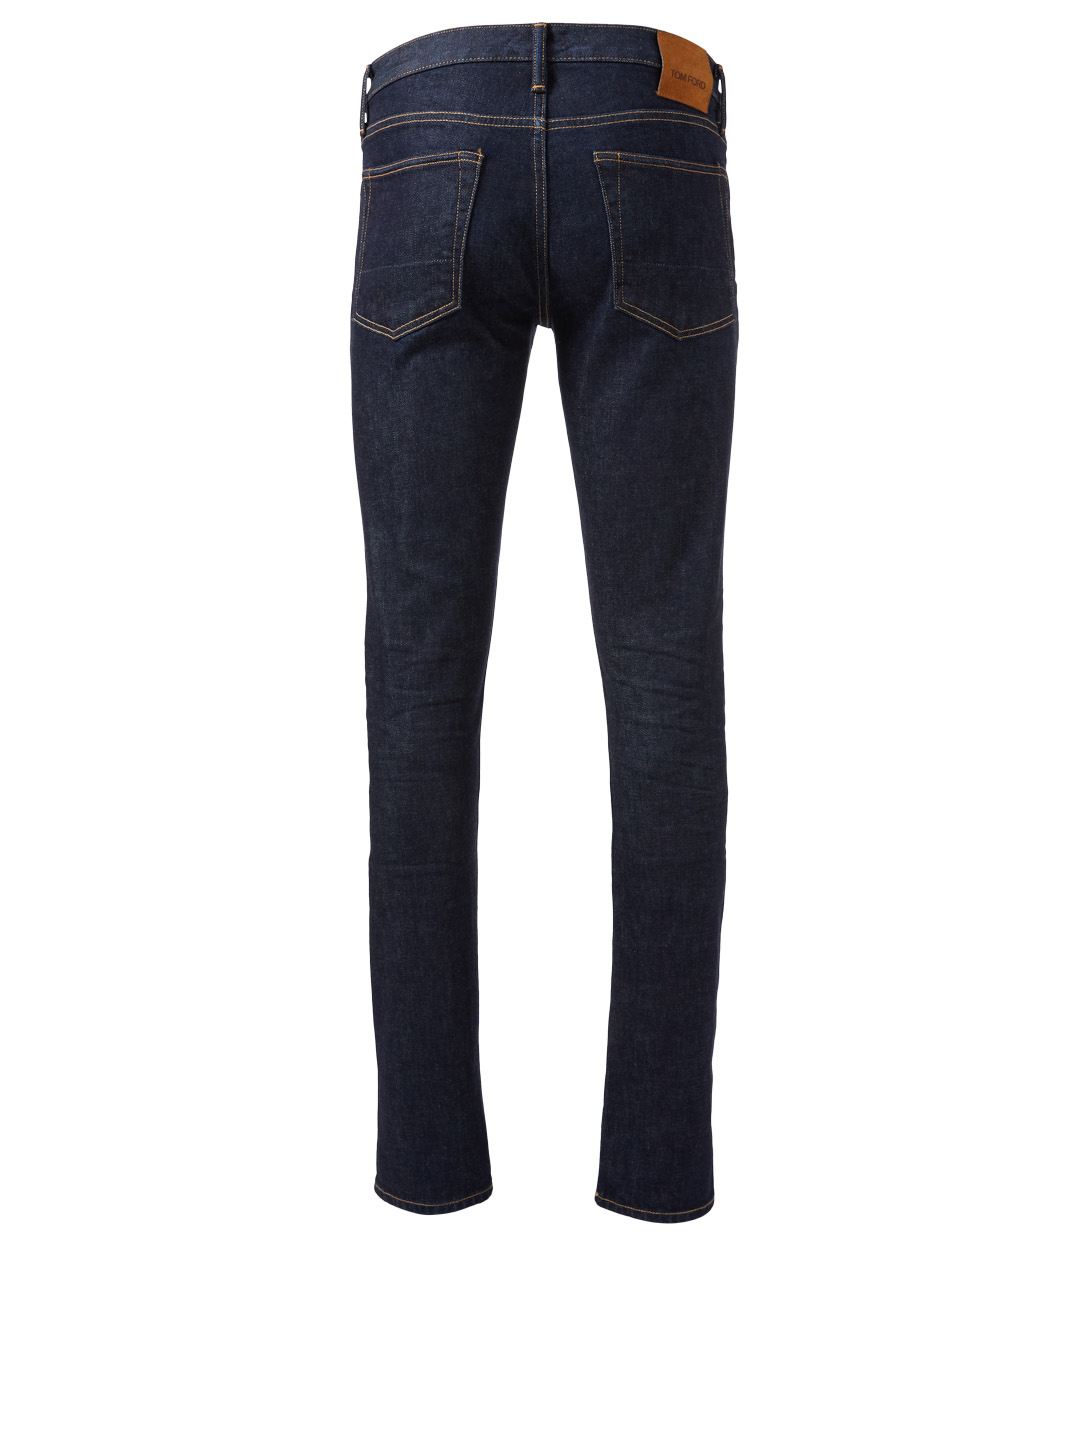 TOM FORD Overdye Slim-Fit Jeans Men's Blue